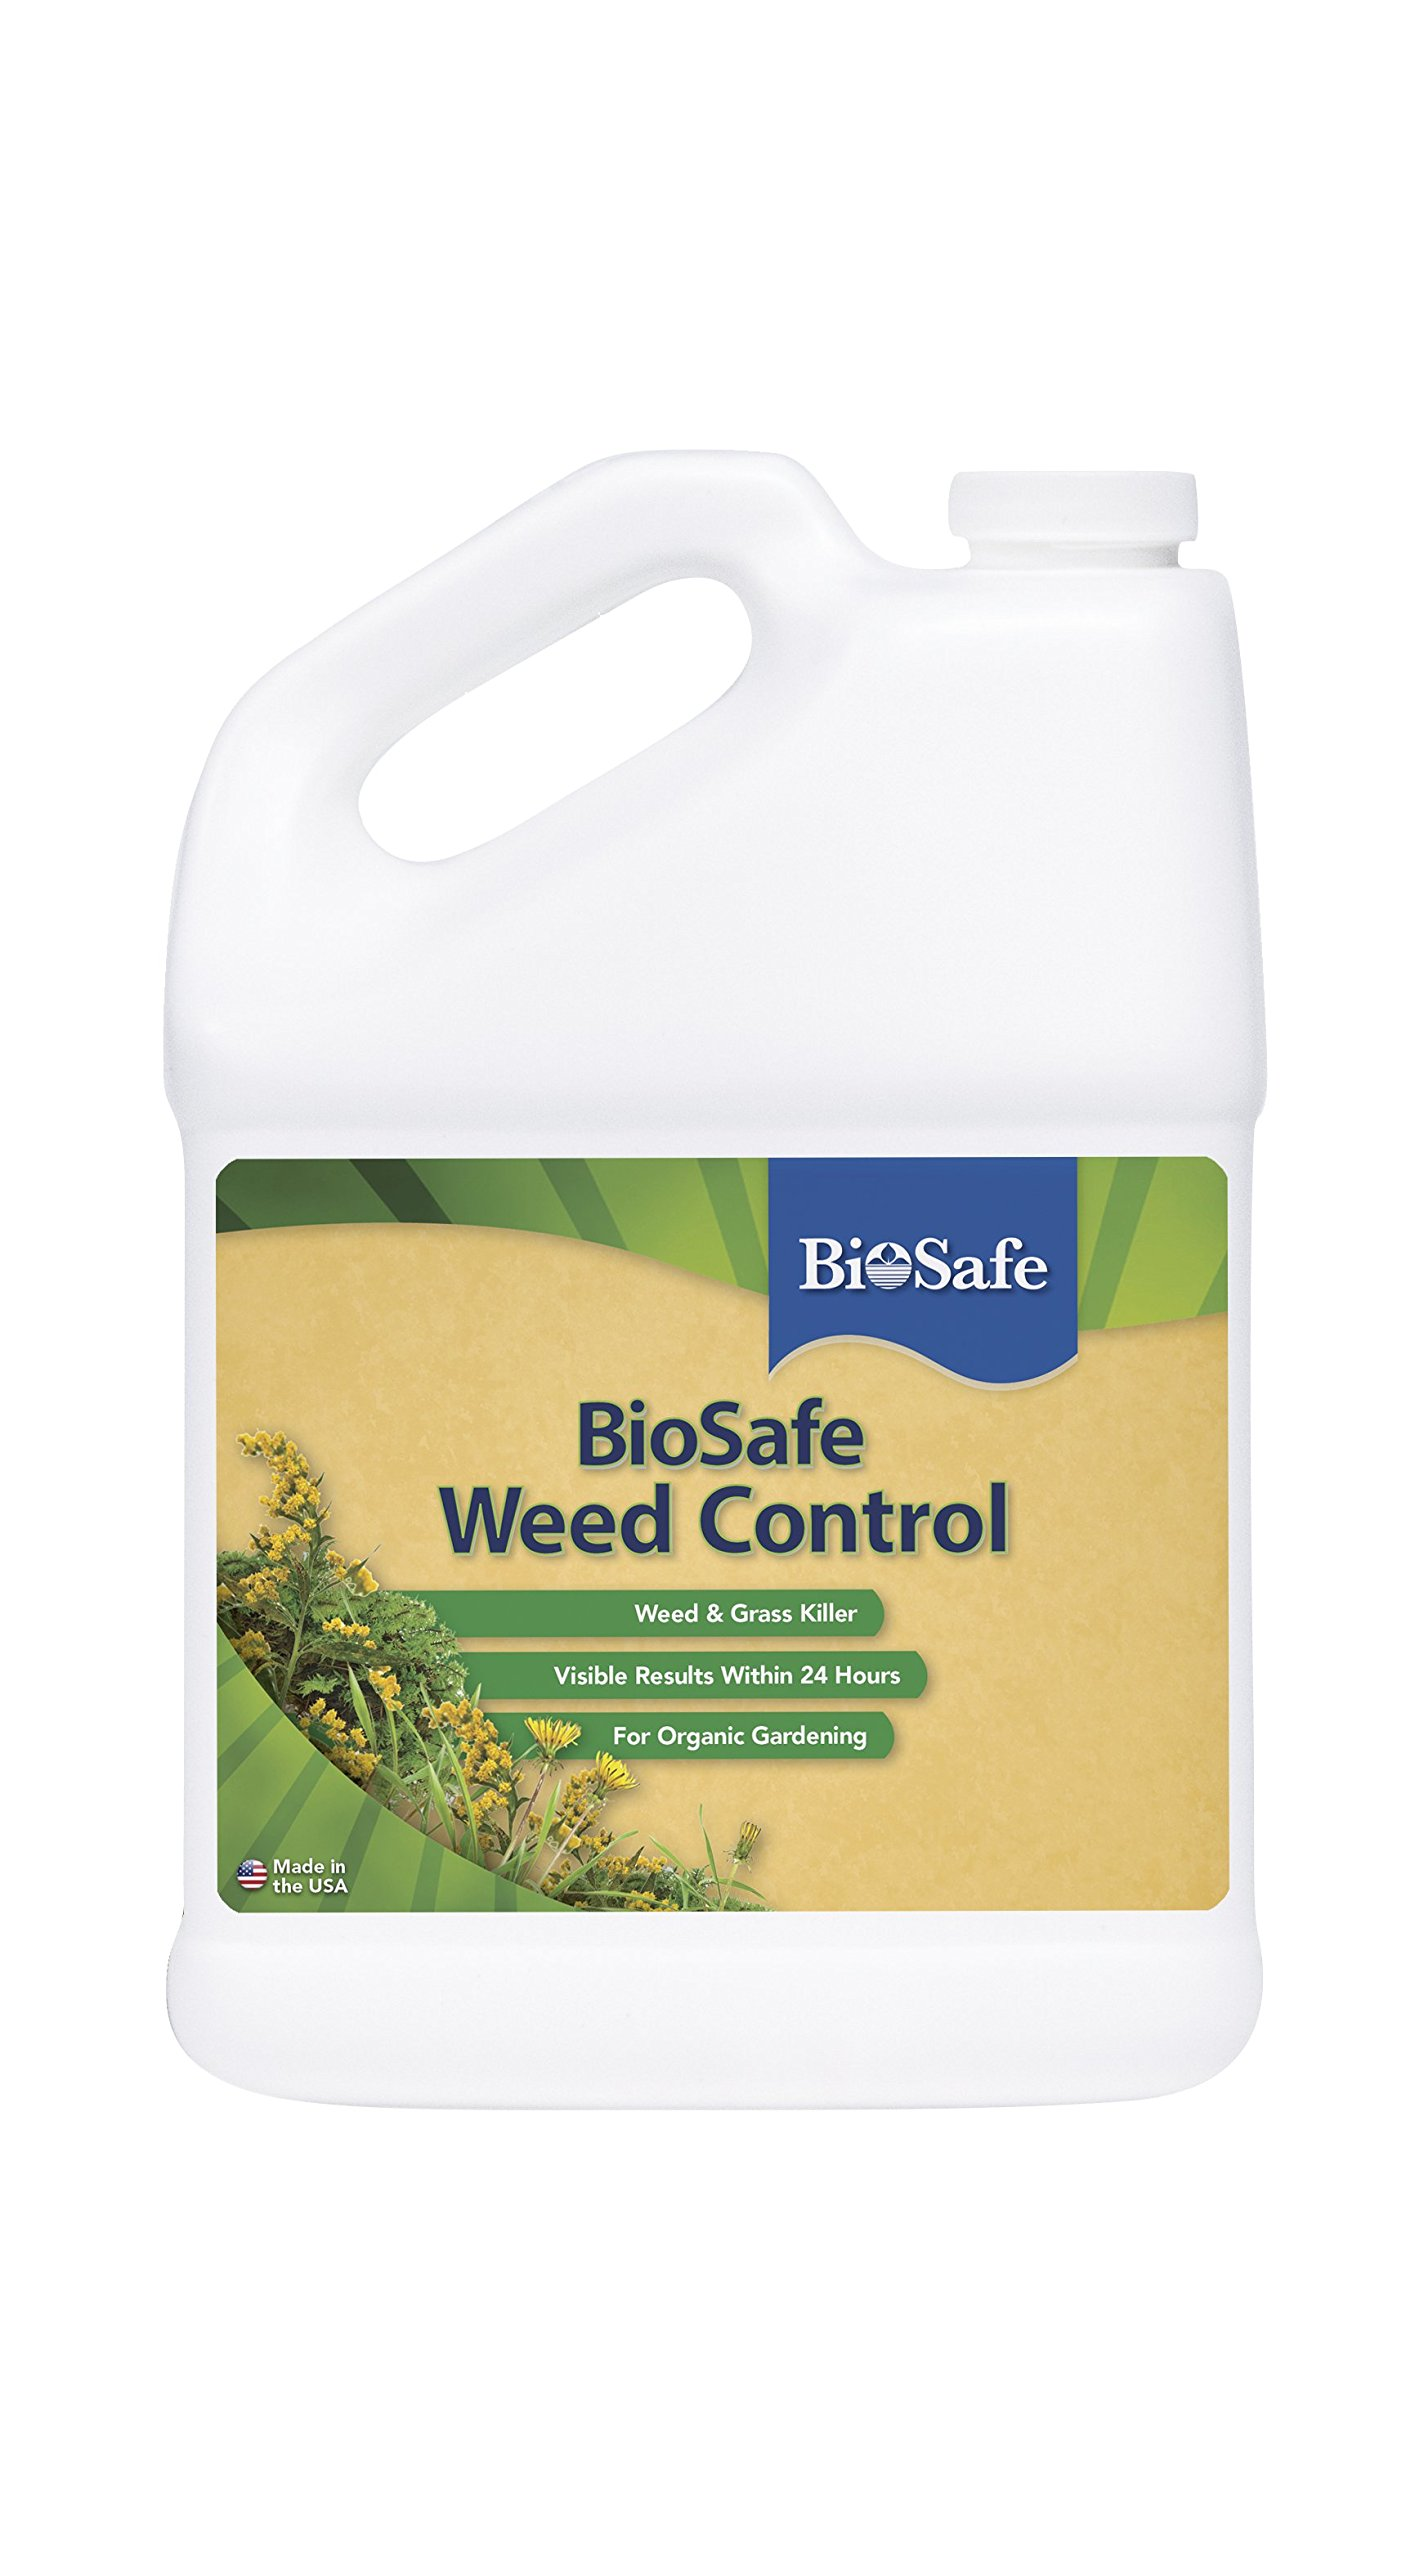 BioSafe Weed Control Concentrate - 1 Gallon - Non-Selective Herbicidal Soap - Weed Killer - OMRI Listed - Organic - EPA Registered. Safe for People, Pets and the Environment.